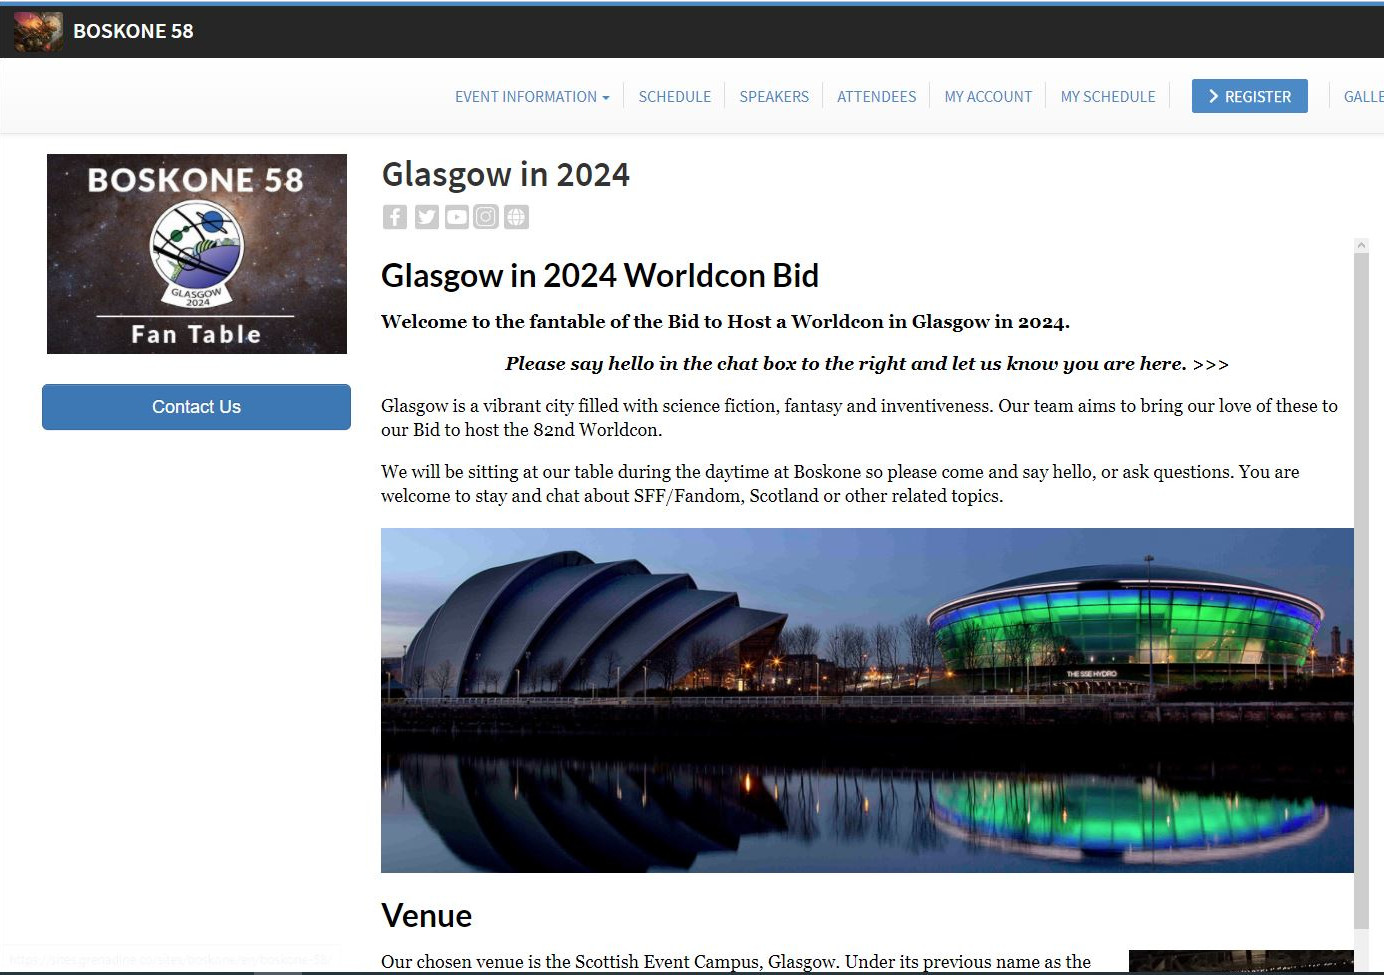 Screenshot from website. On the lefthand side there is Boskone 58 inscription and logo. To the right there is text about Glasgow in 2024 Worldcon Bid and a picture of two building by the river. The first looks like armadillo and the other is round.